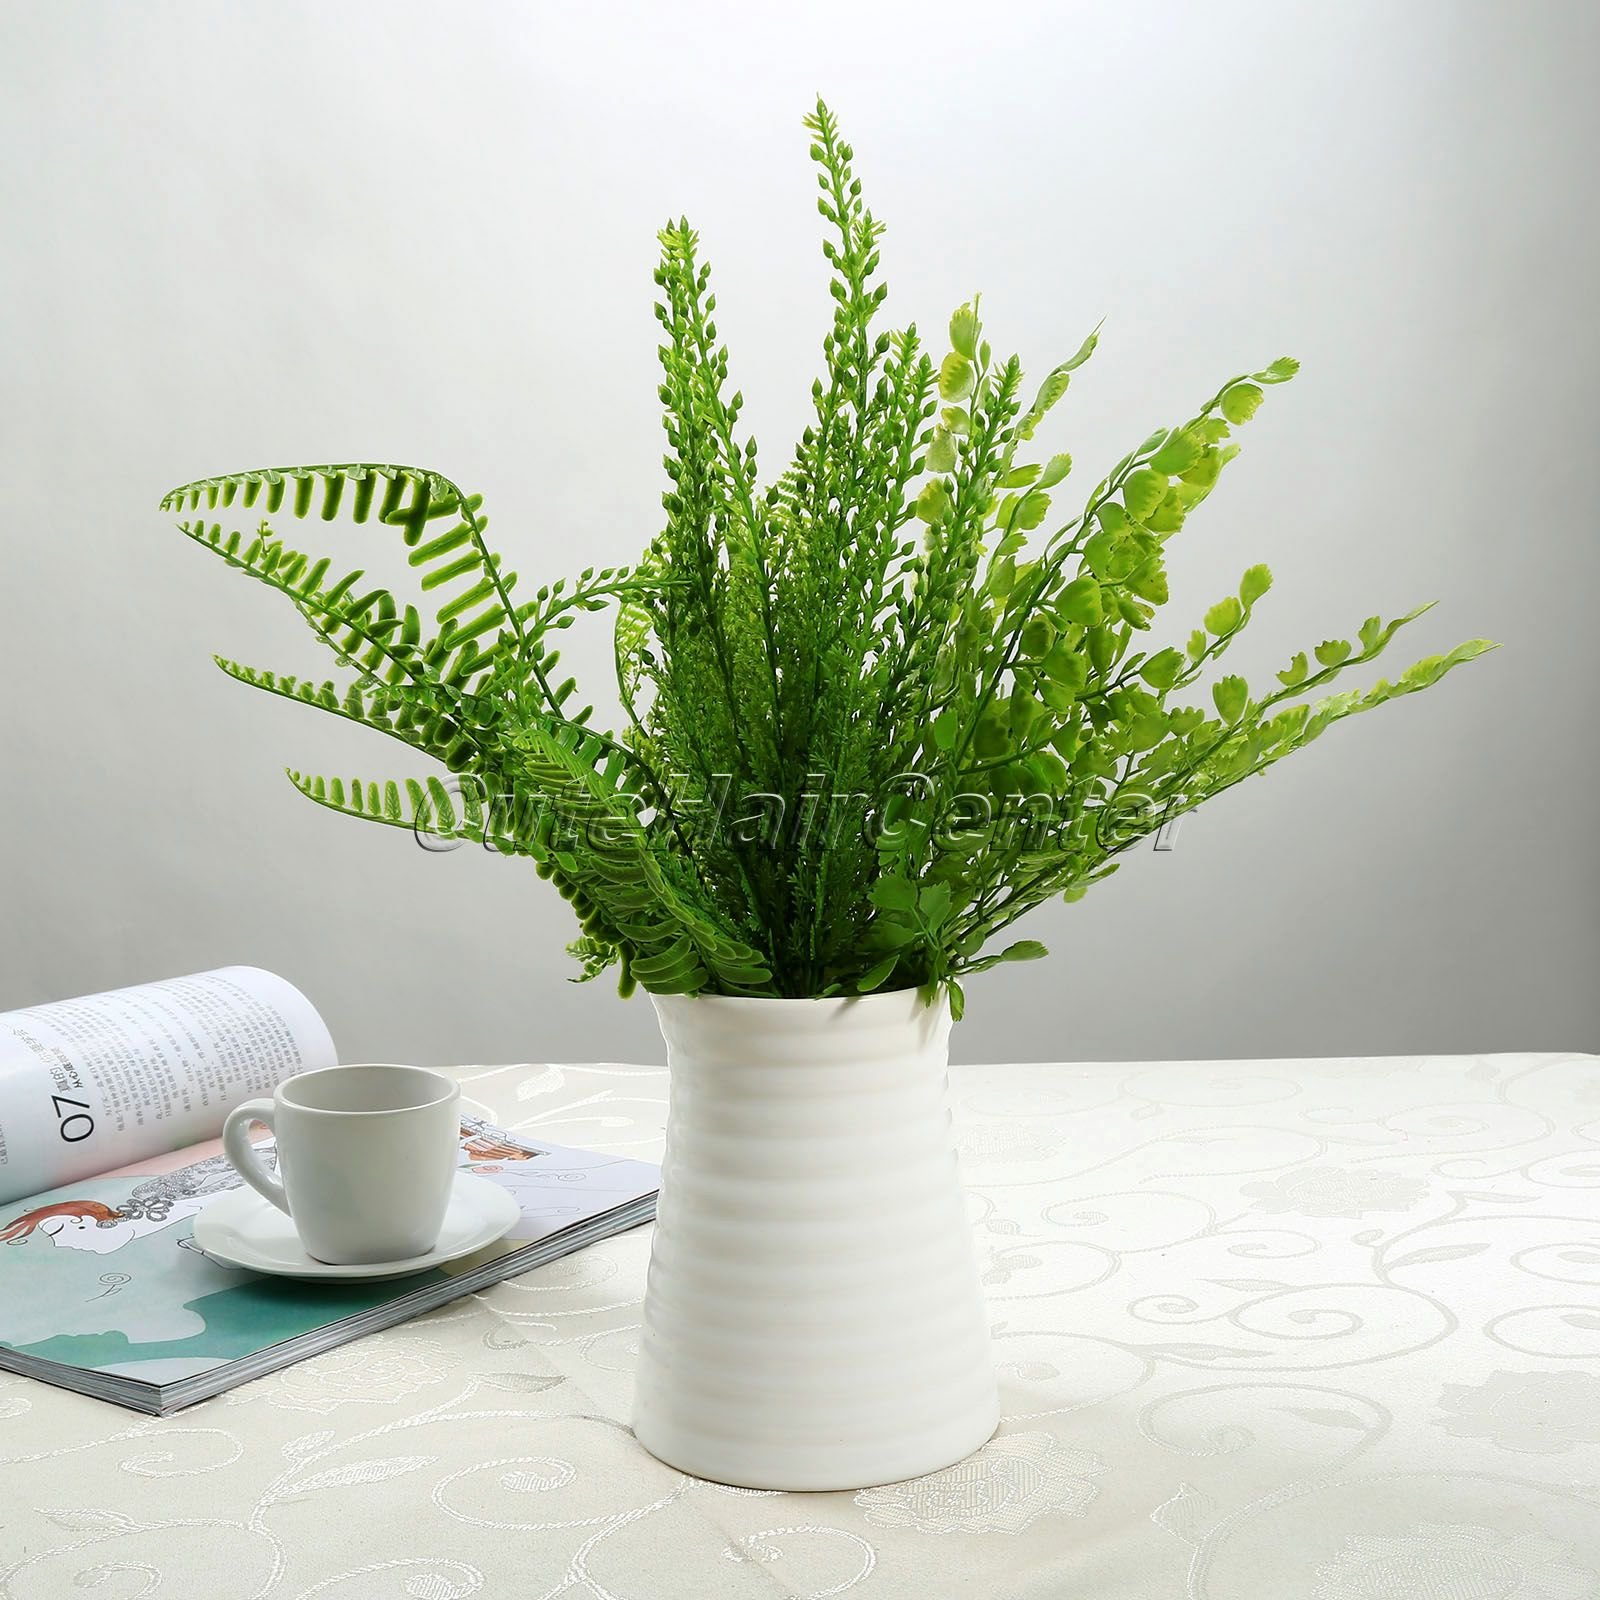 1 pcs plastic fake plant green leaves potted plant flowers office wedding room home decor artificial plants for decoration artificial plants for office decor